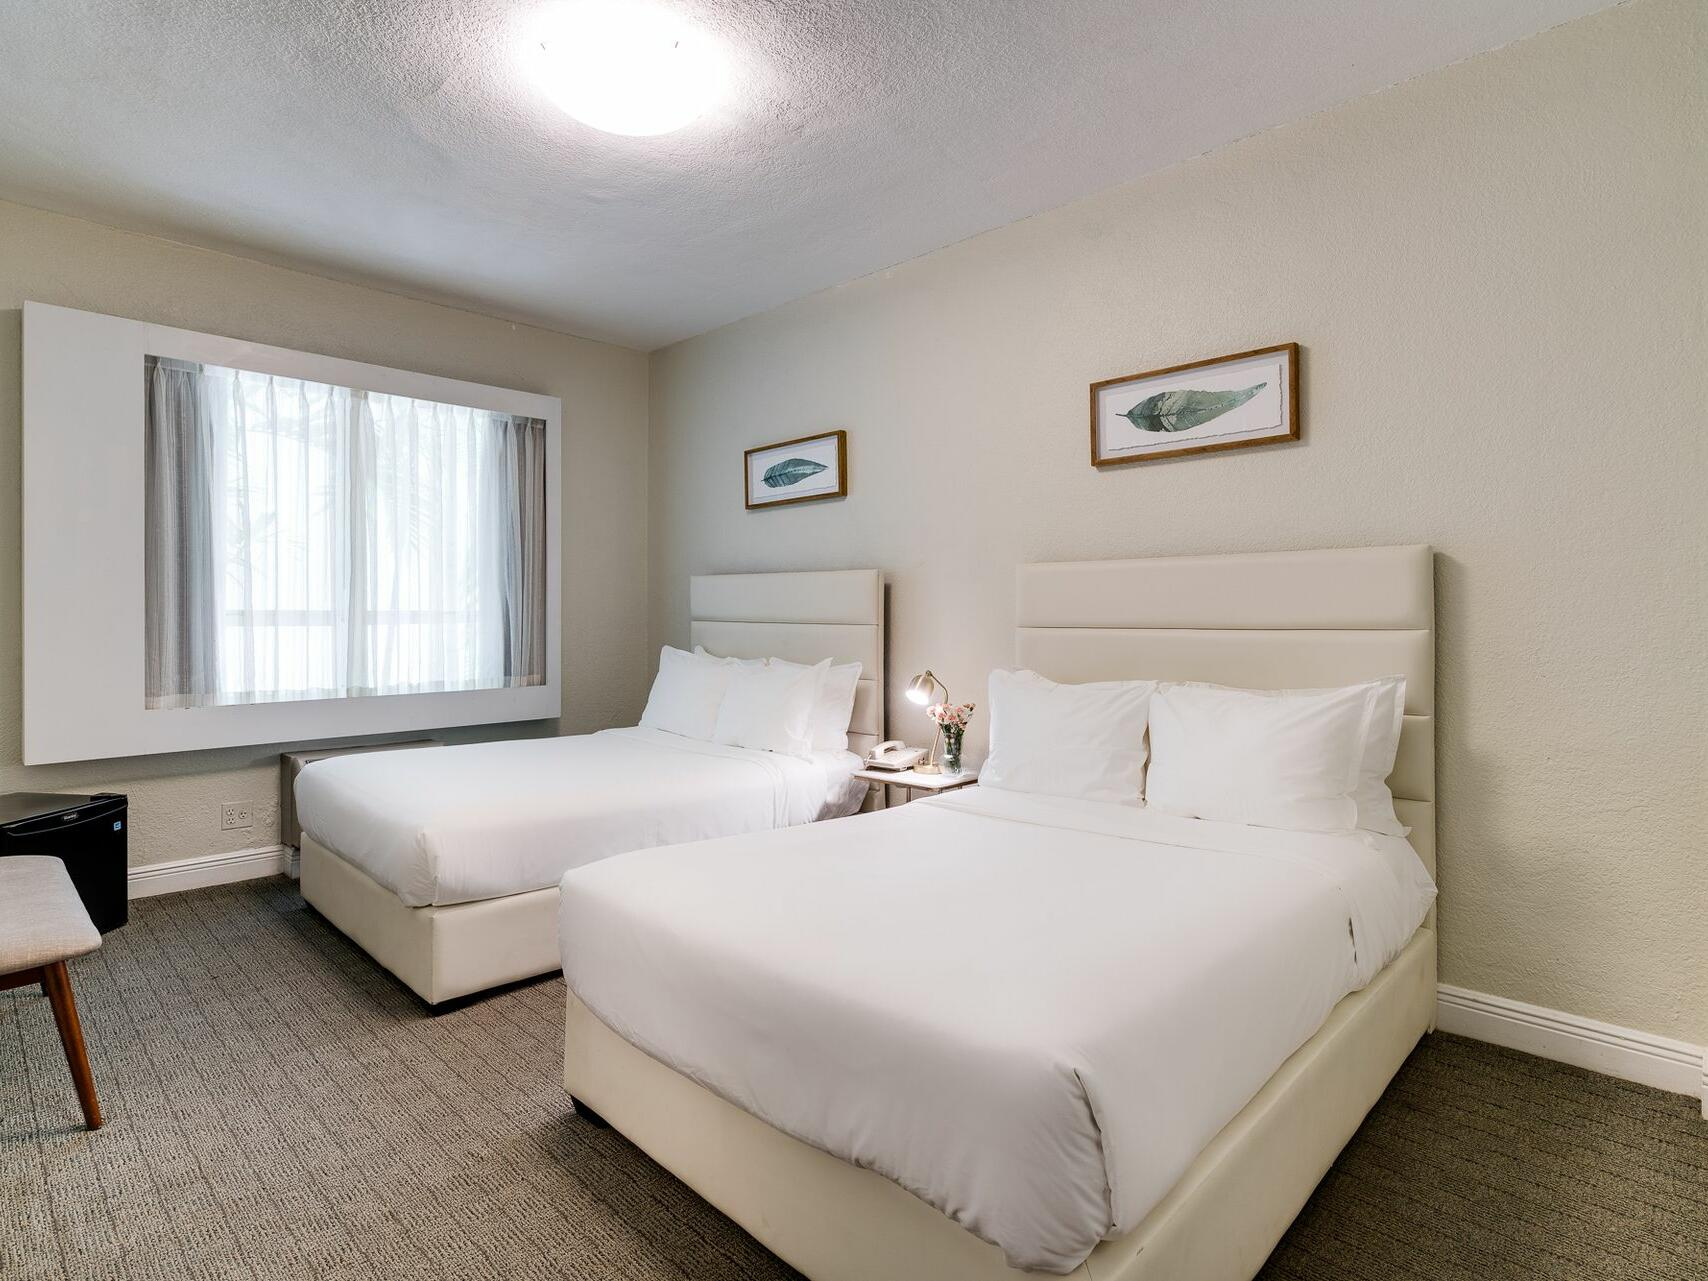 View of Standard Double room at Crest Hotel Suites